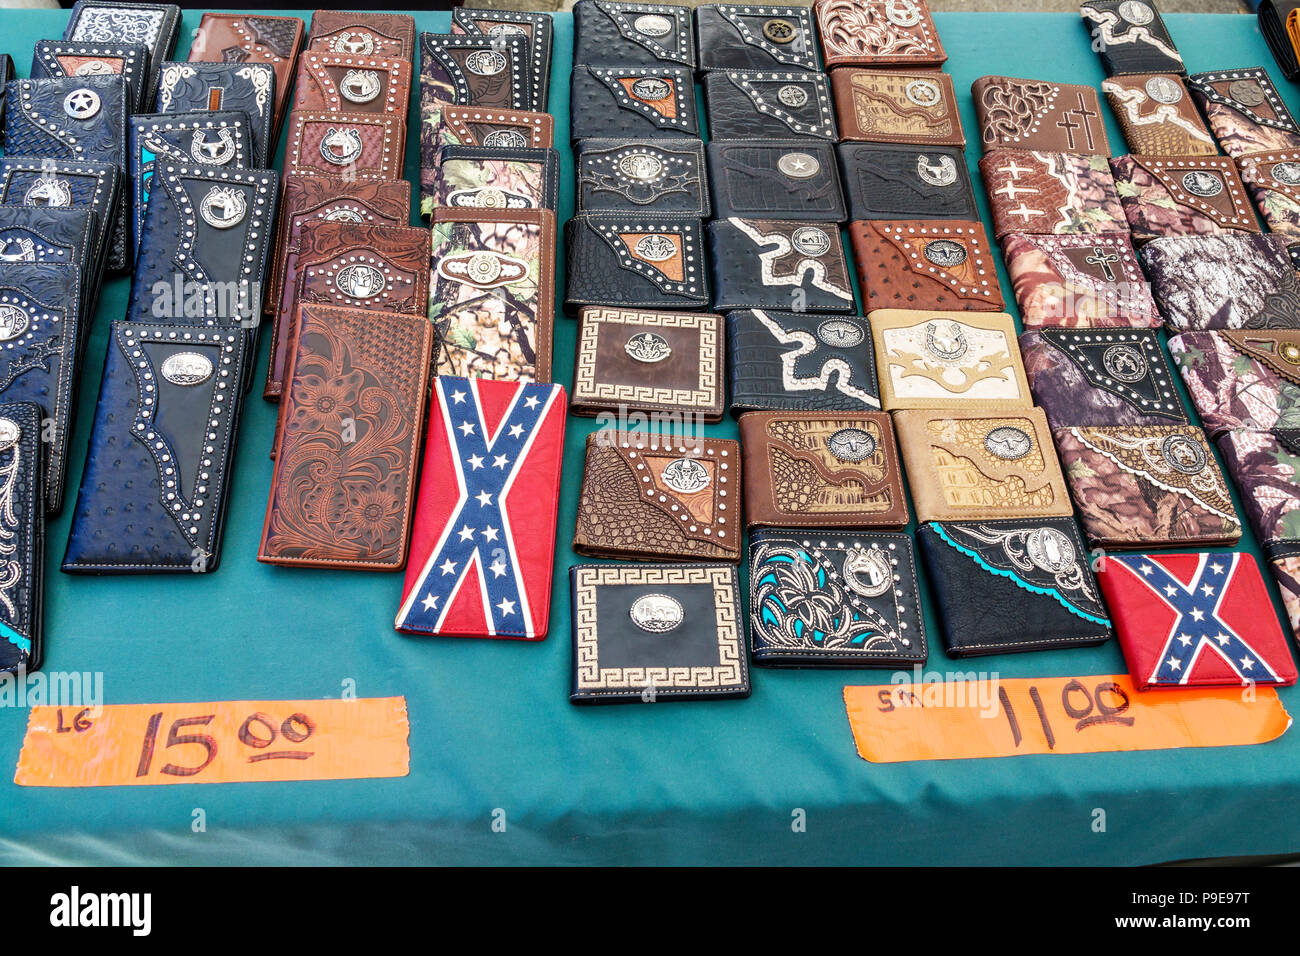 Florida Micanopy Fall Harvest Festival annual small town community event booths stalls vendors buying selling shopping tooled painted leather wallets - Stock Image